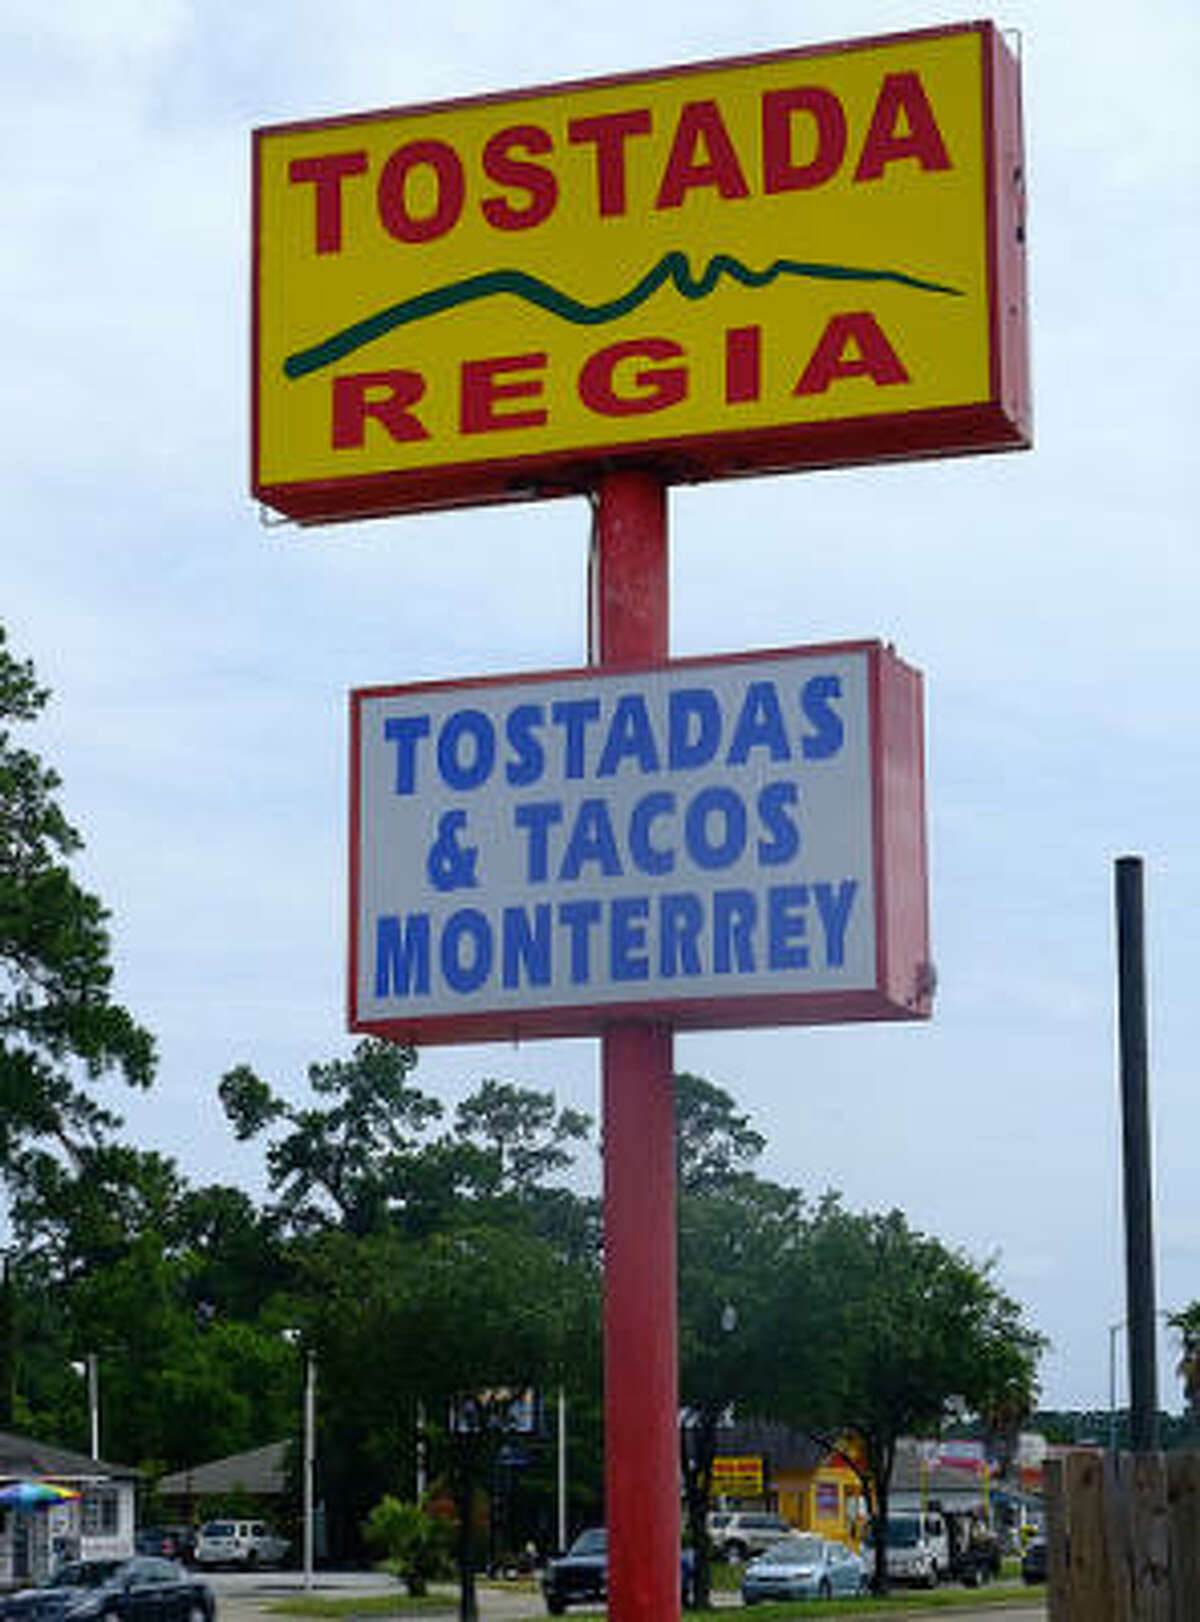 Look for the tall sign advertising Monterrey-style tostadas and tacos.